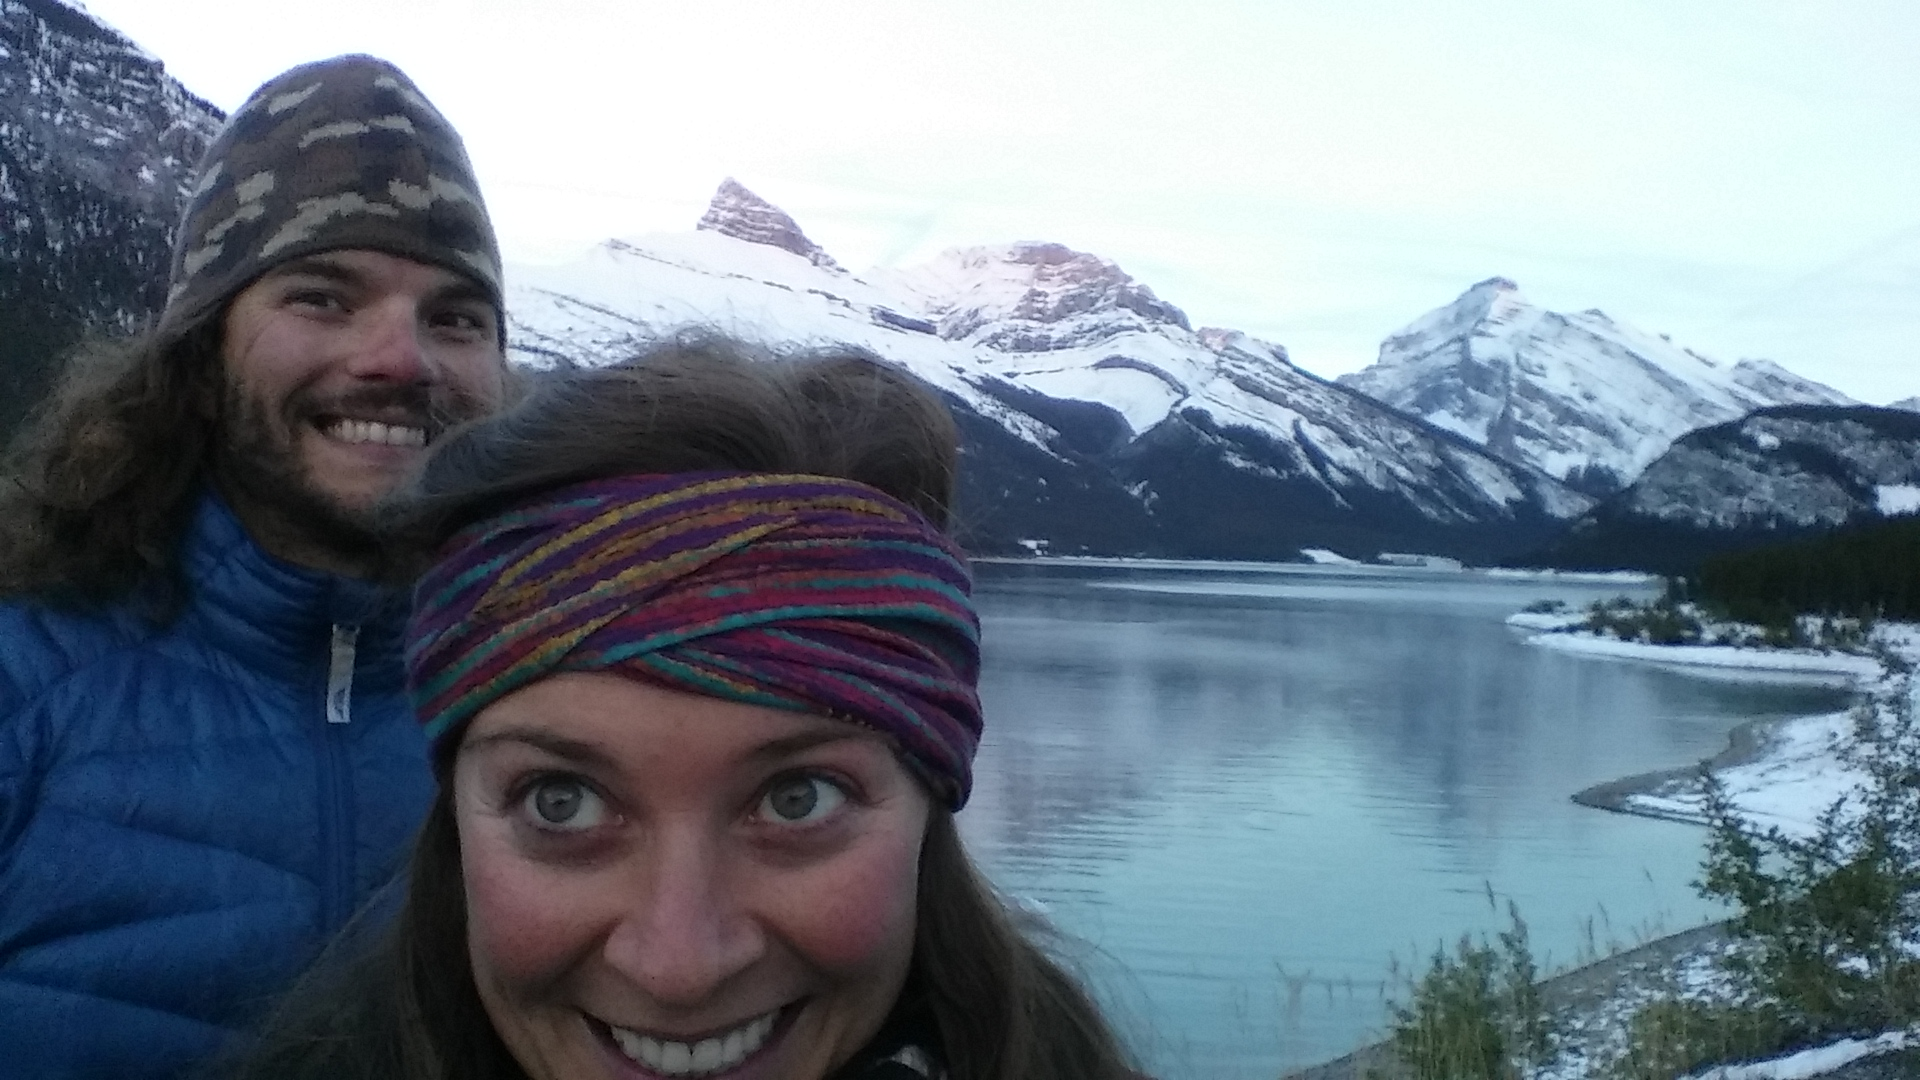 Coldest night camping of our trip. Did it once, not sure I want to repeat. Made the best of Spray Lake, Canmore, Alberta.